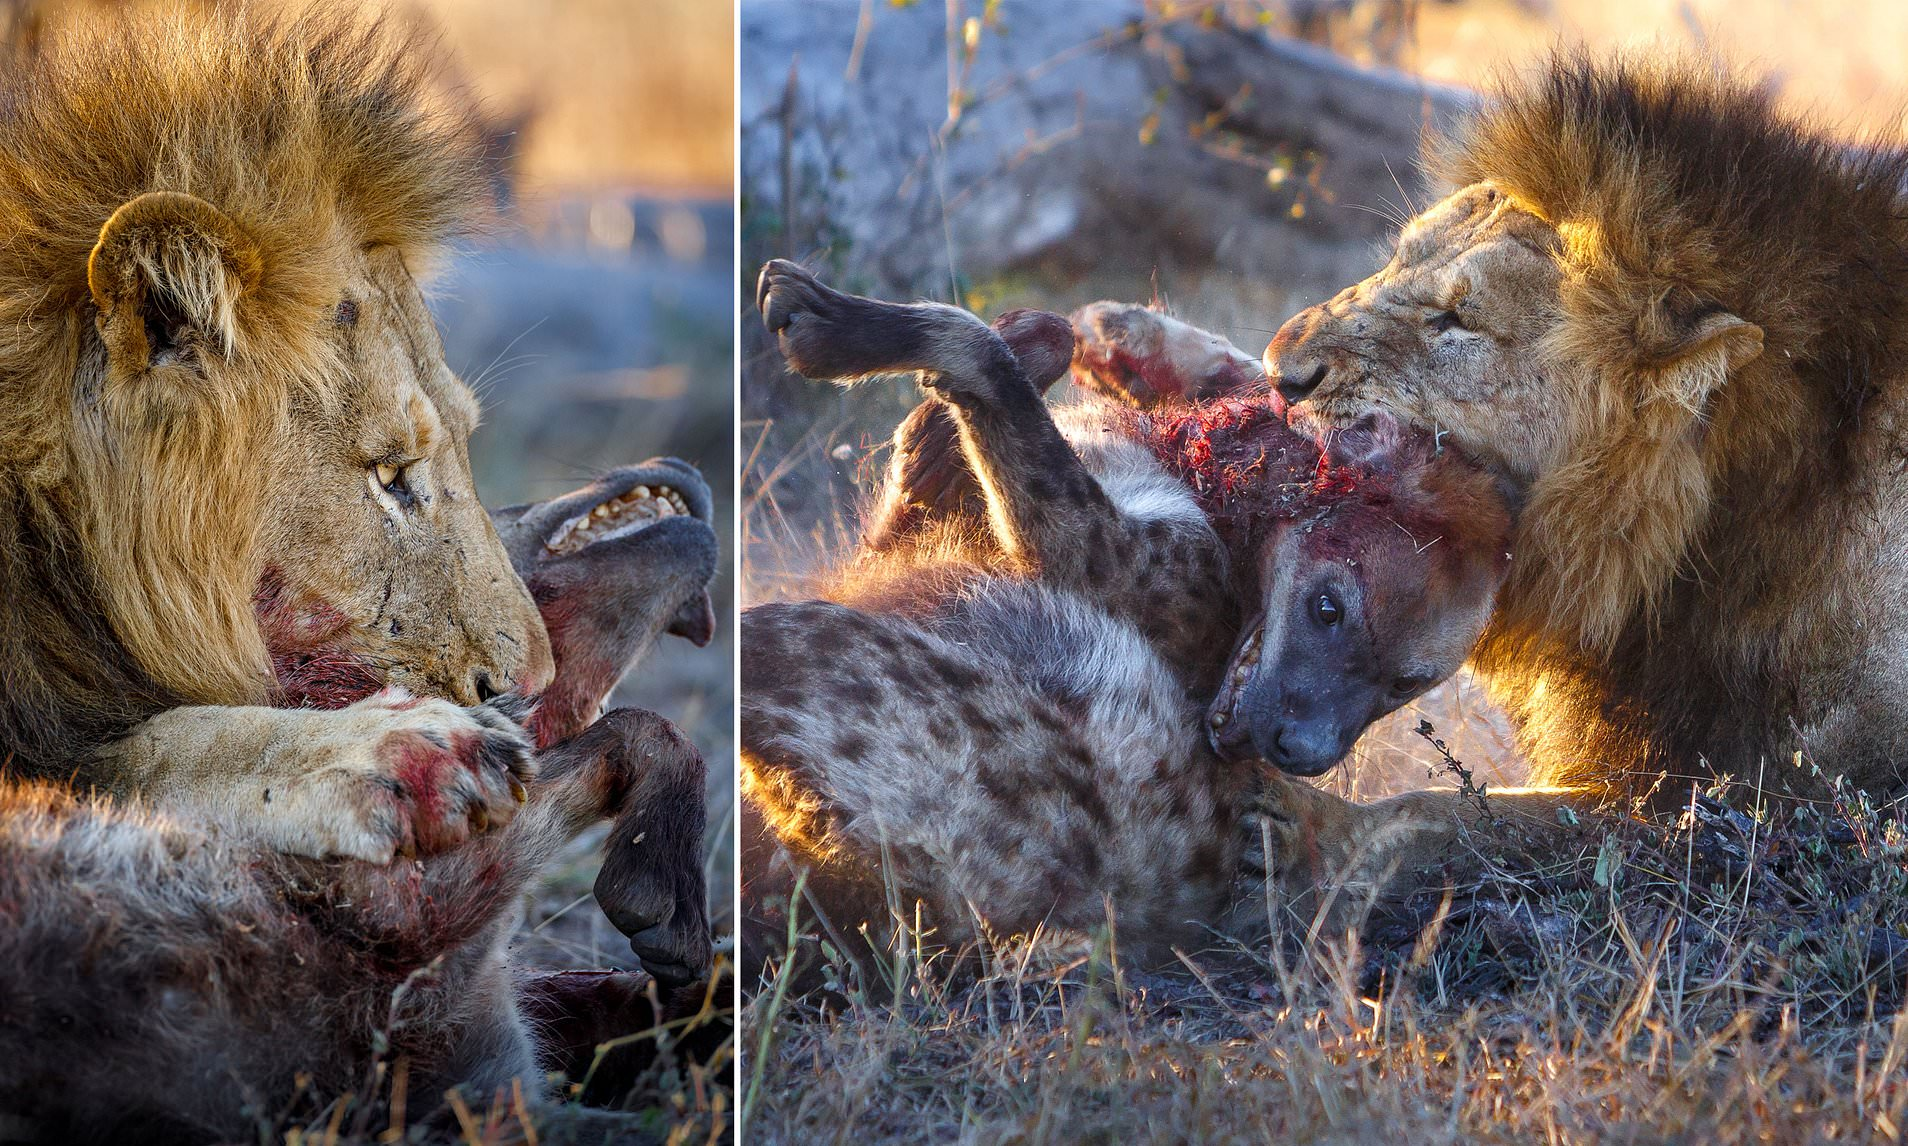 Hyena Is Ripped To Pieces By A Lion In Photos From South Africa Daily Mail Online